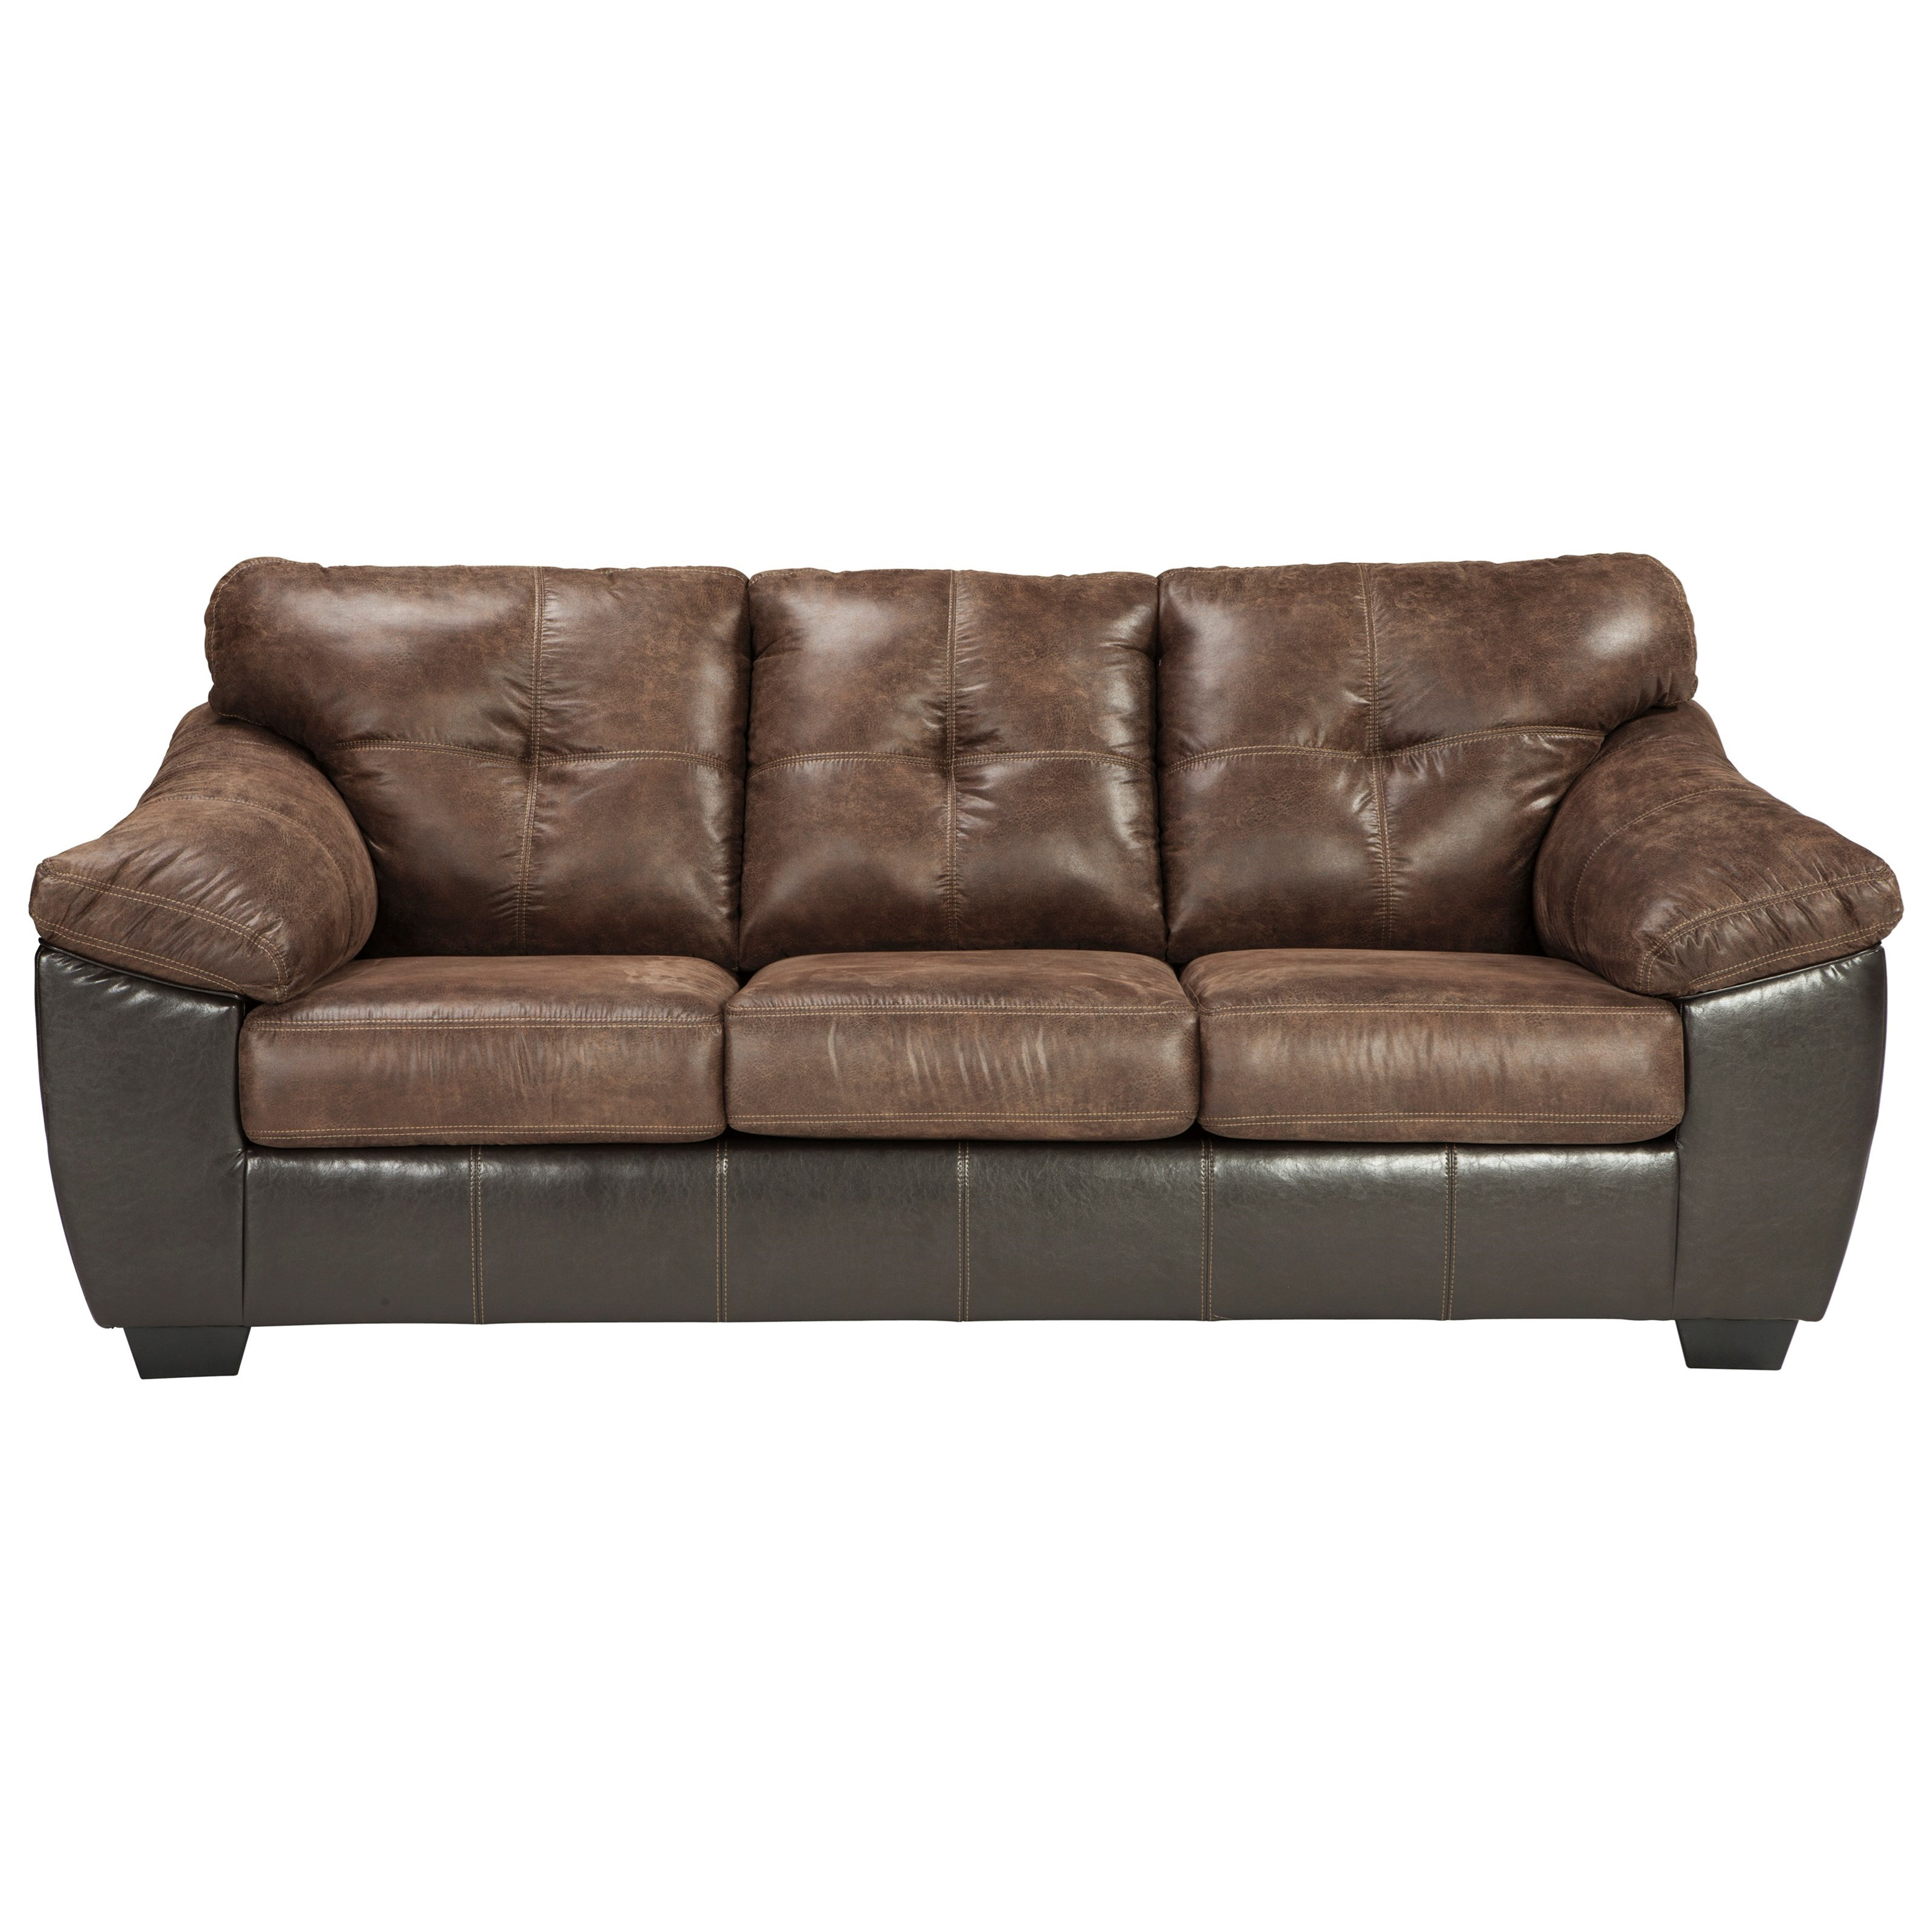 Benchcraft Gregale Brown Dark Brown Faux Leather Sofa With Pillow